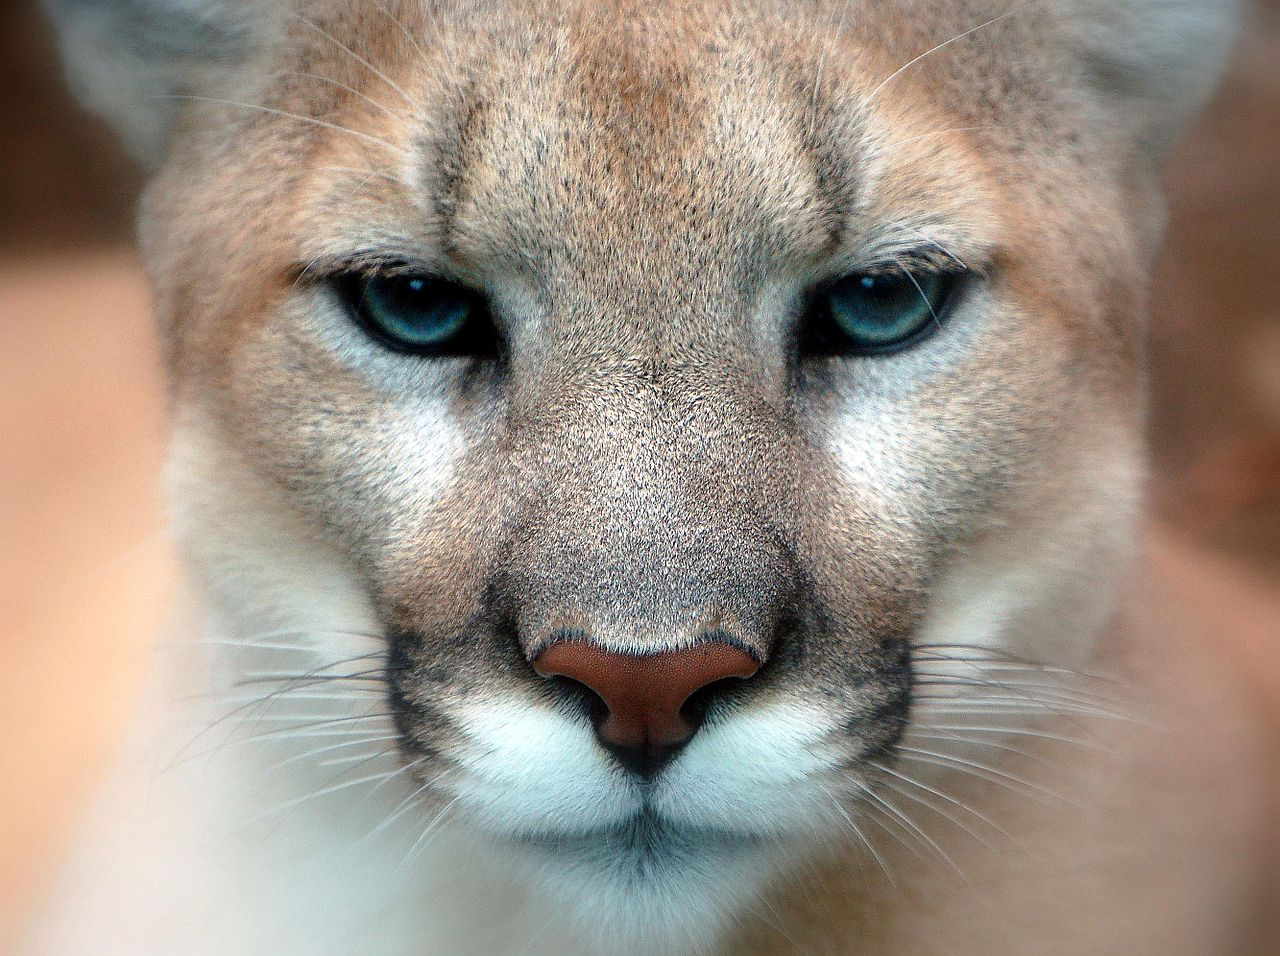 Cougar closeup, courtesy of wikipedia commons